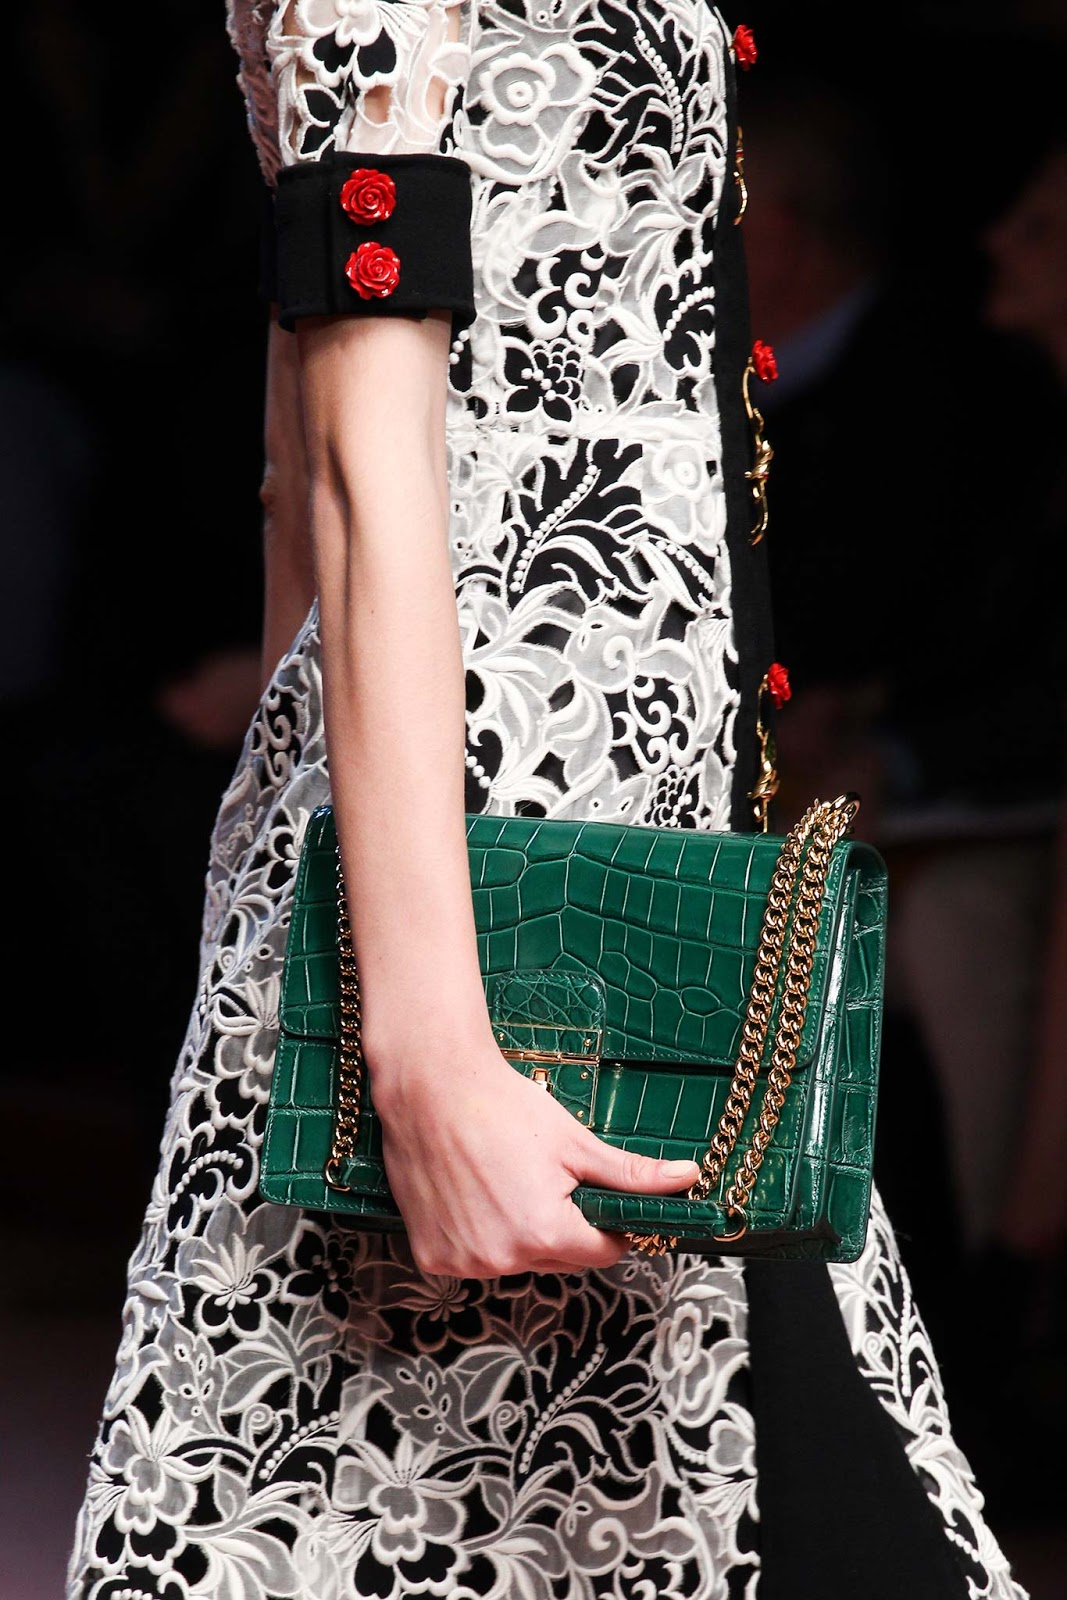 Fall 2015 accessories trend report / best bags / investment bags / crocodile accessories trend at Dolce&Gabbana Fall/Winter 2015 via fashionedbylove.co.uk, british fashion blog